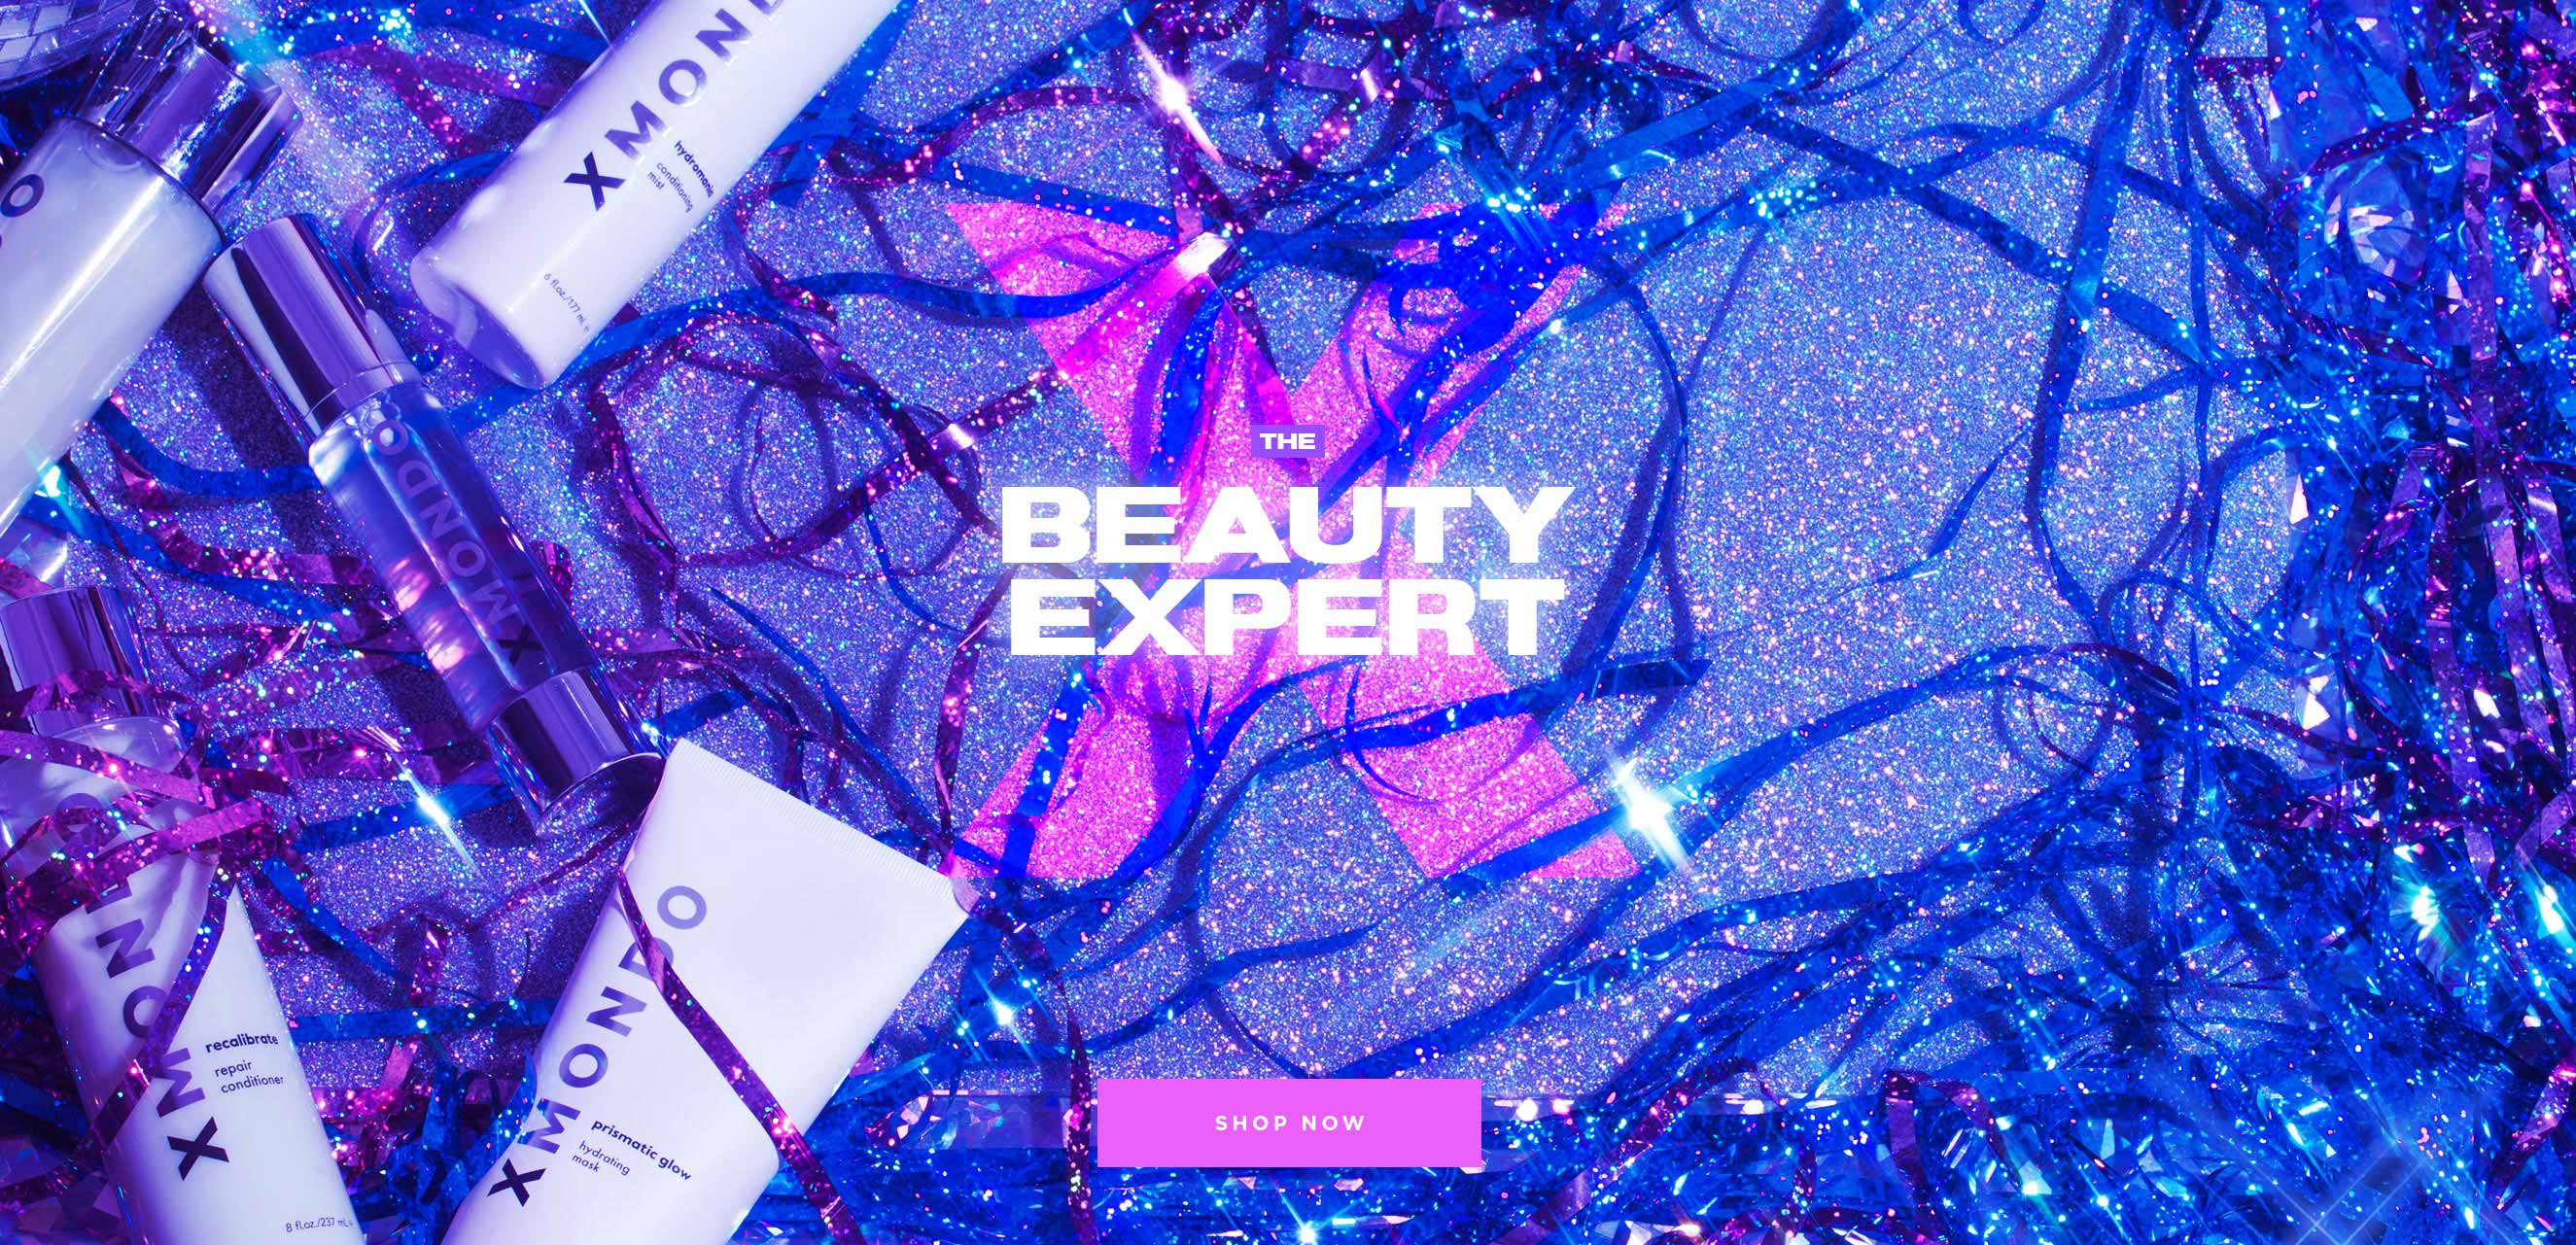 Gift Guide for The Beauty Expert